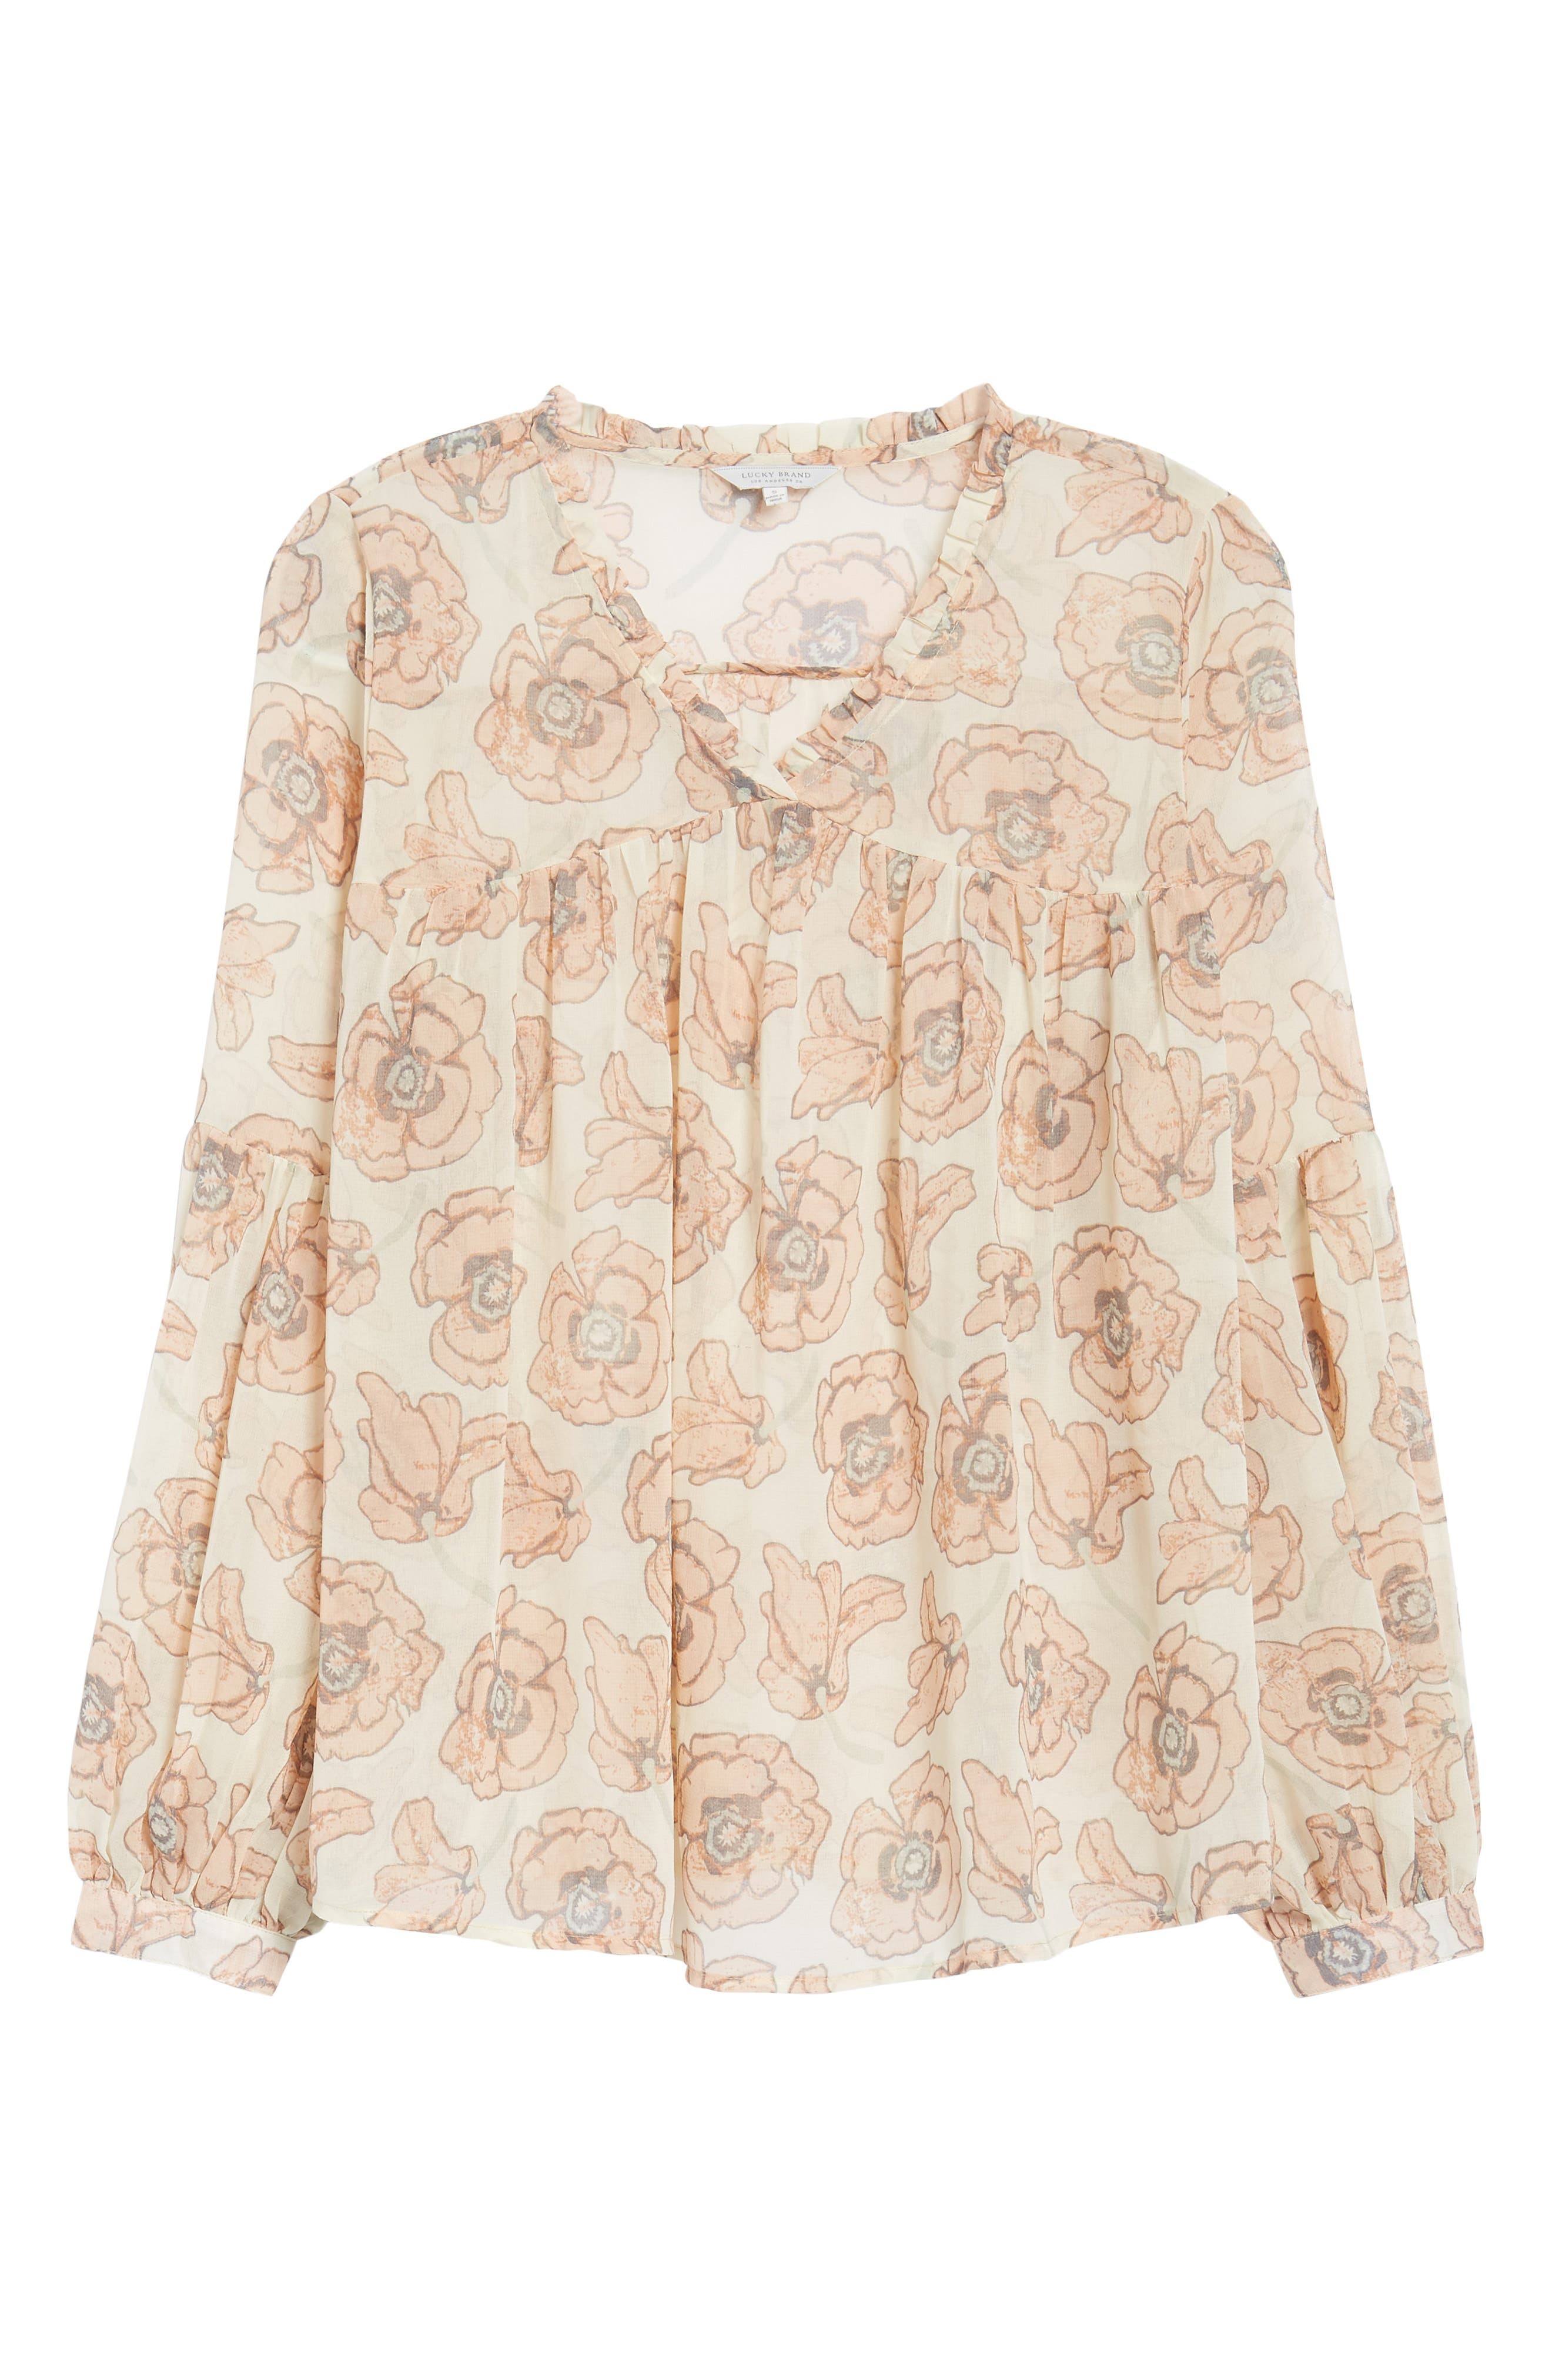 Exploded Floral Top,                             Alternate thumbnail 6, color,                             690